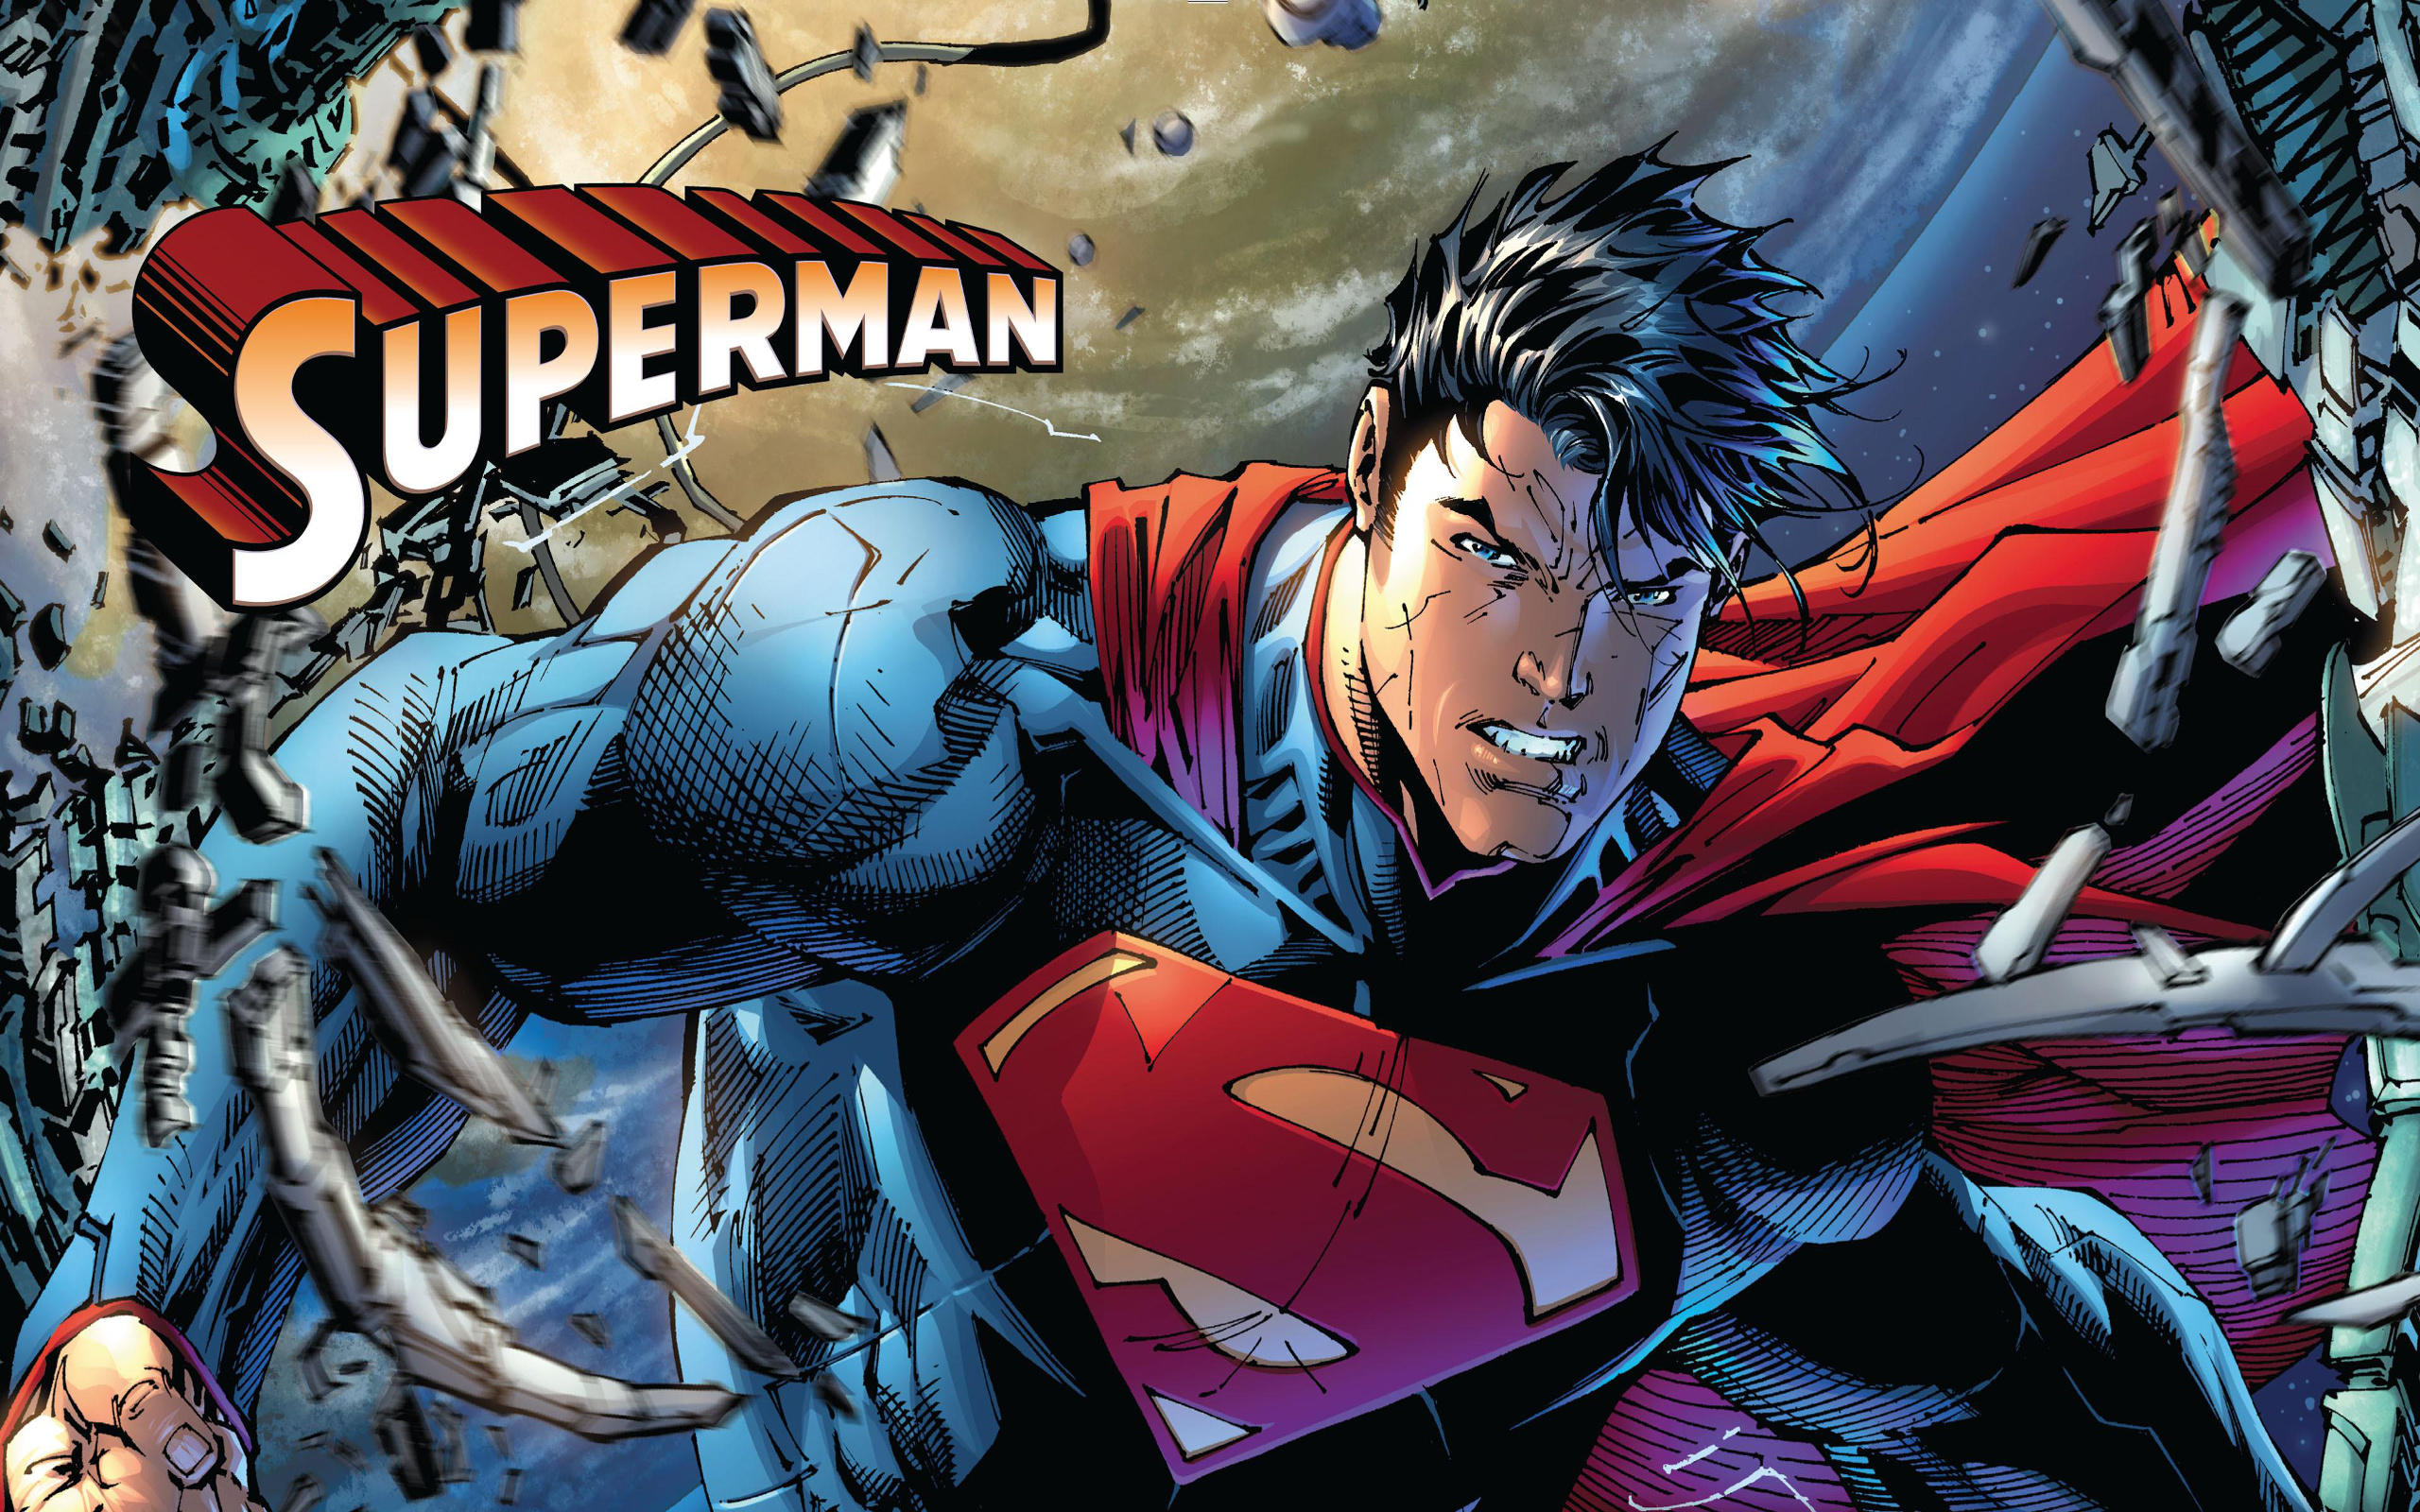 Superman Comic Wallpaper High Quality Resolution - Wickedsa com